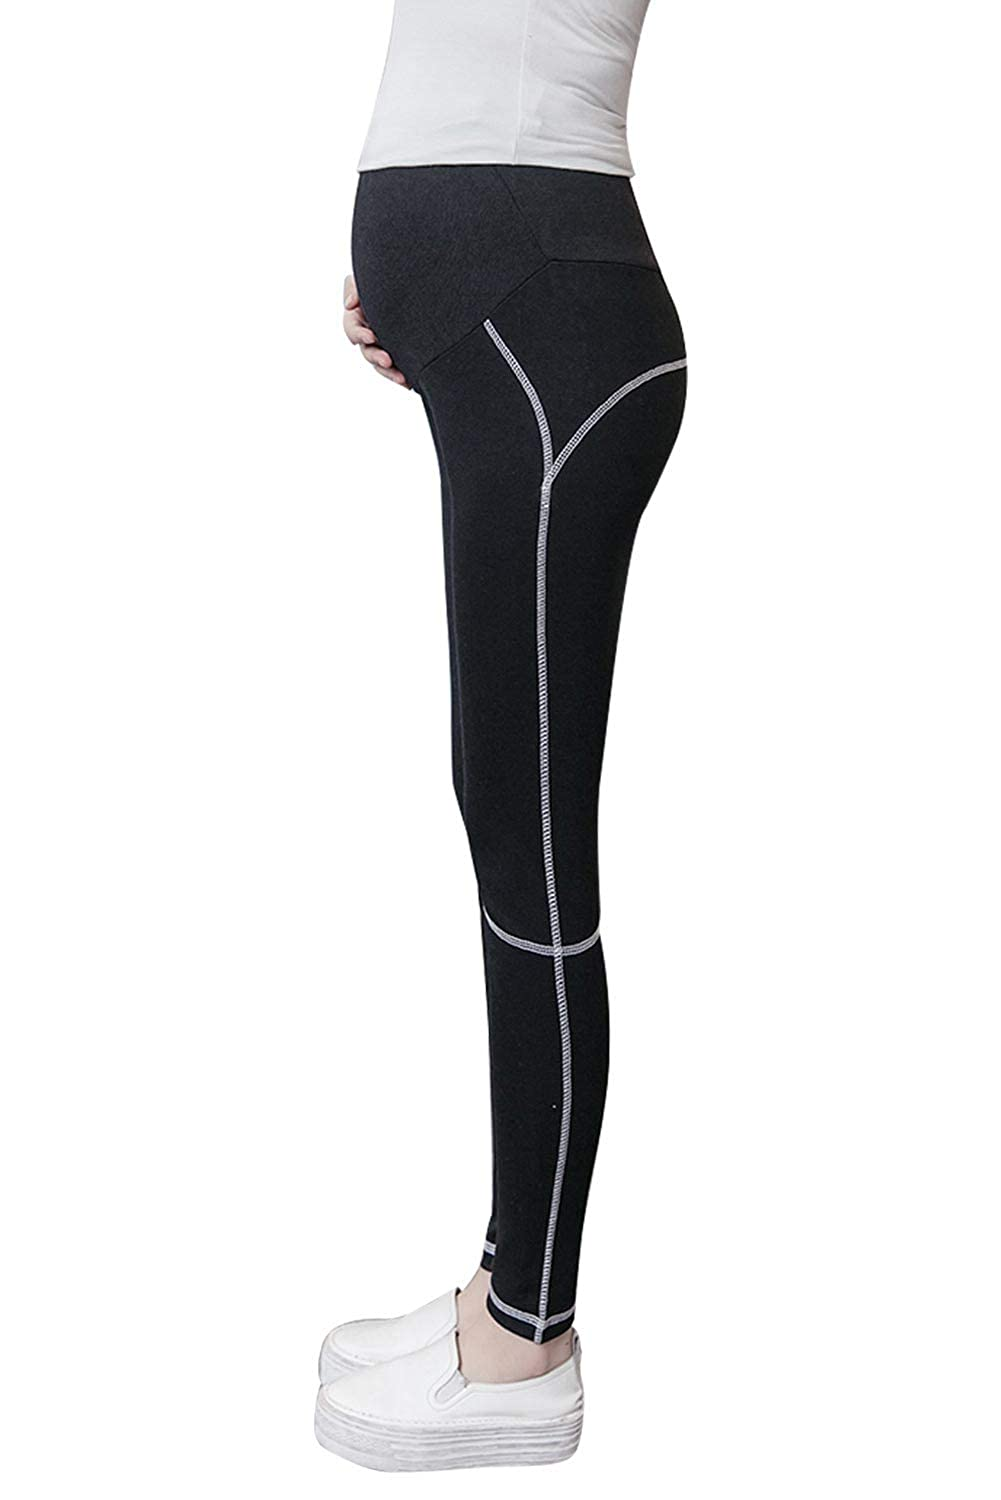 aa85eae93f900 Maternity Workout Leggings Yoga Pants Over Belly High Waist for Pregnant  Women at Amazon Women's Clothing store: